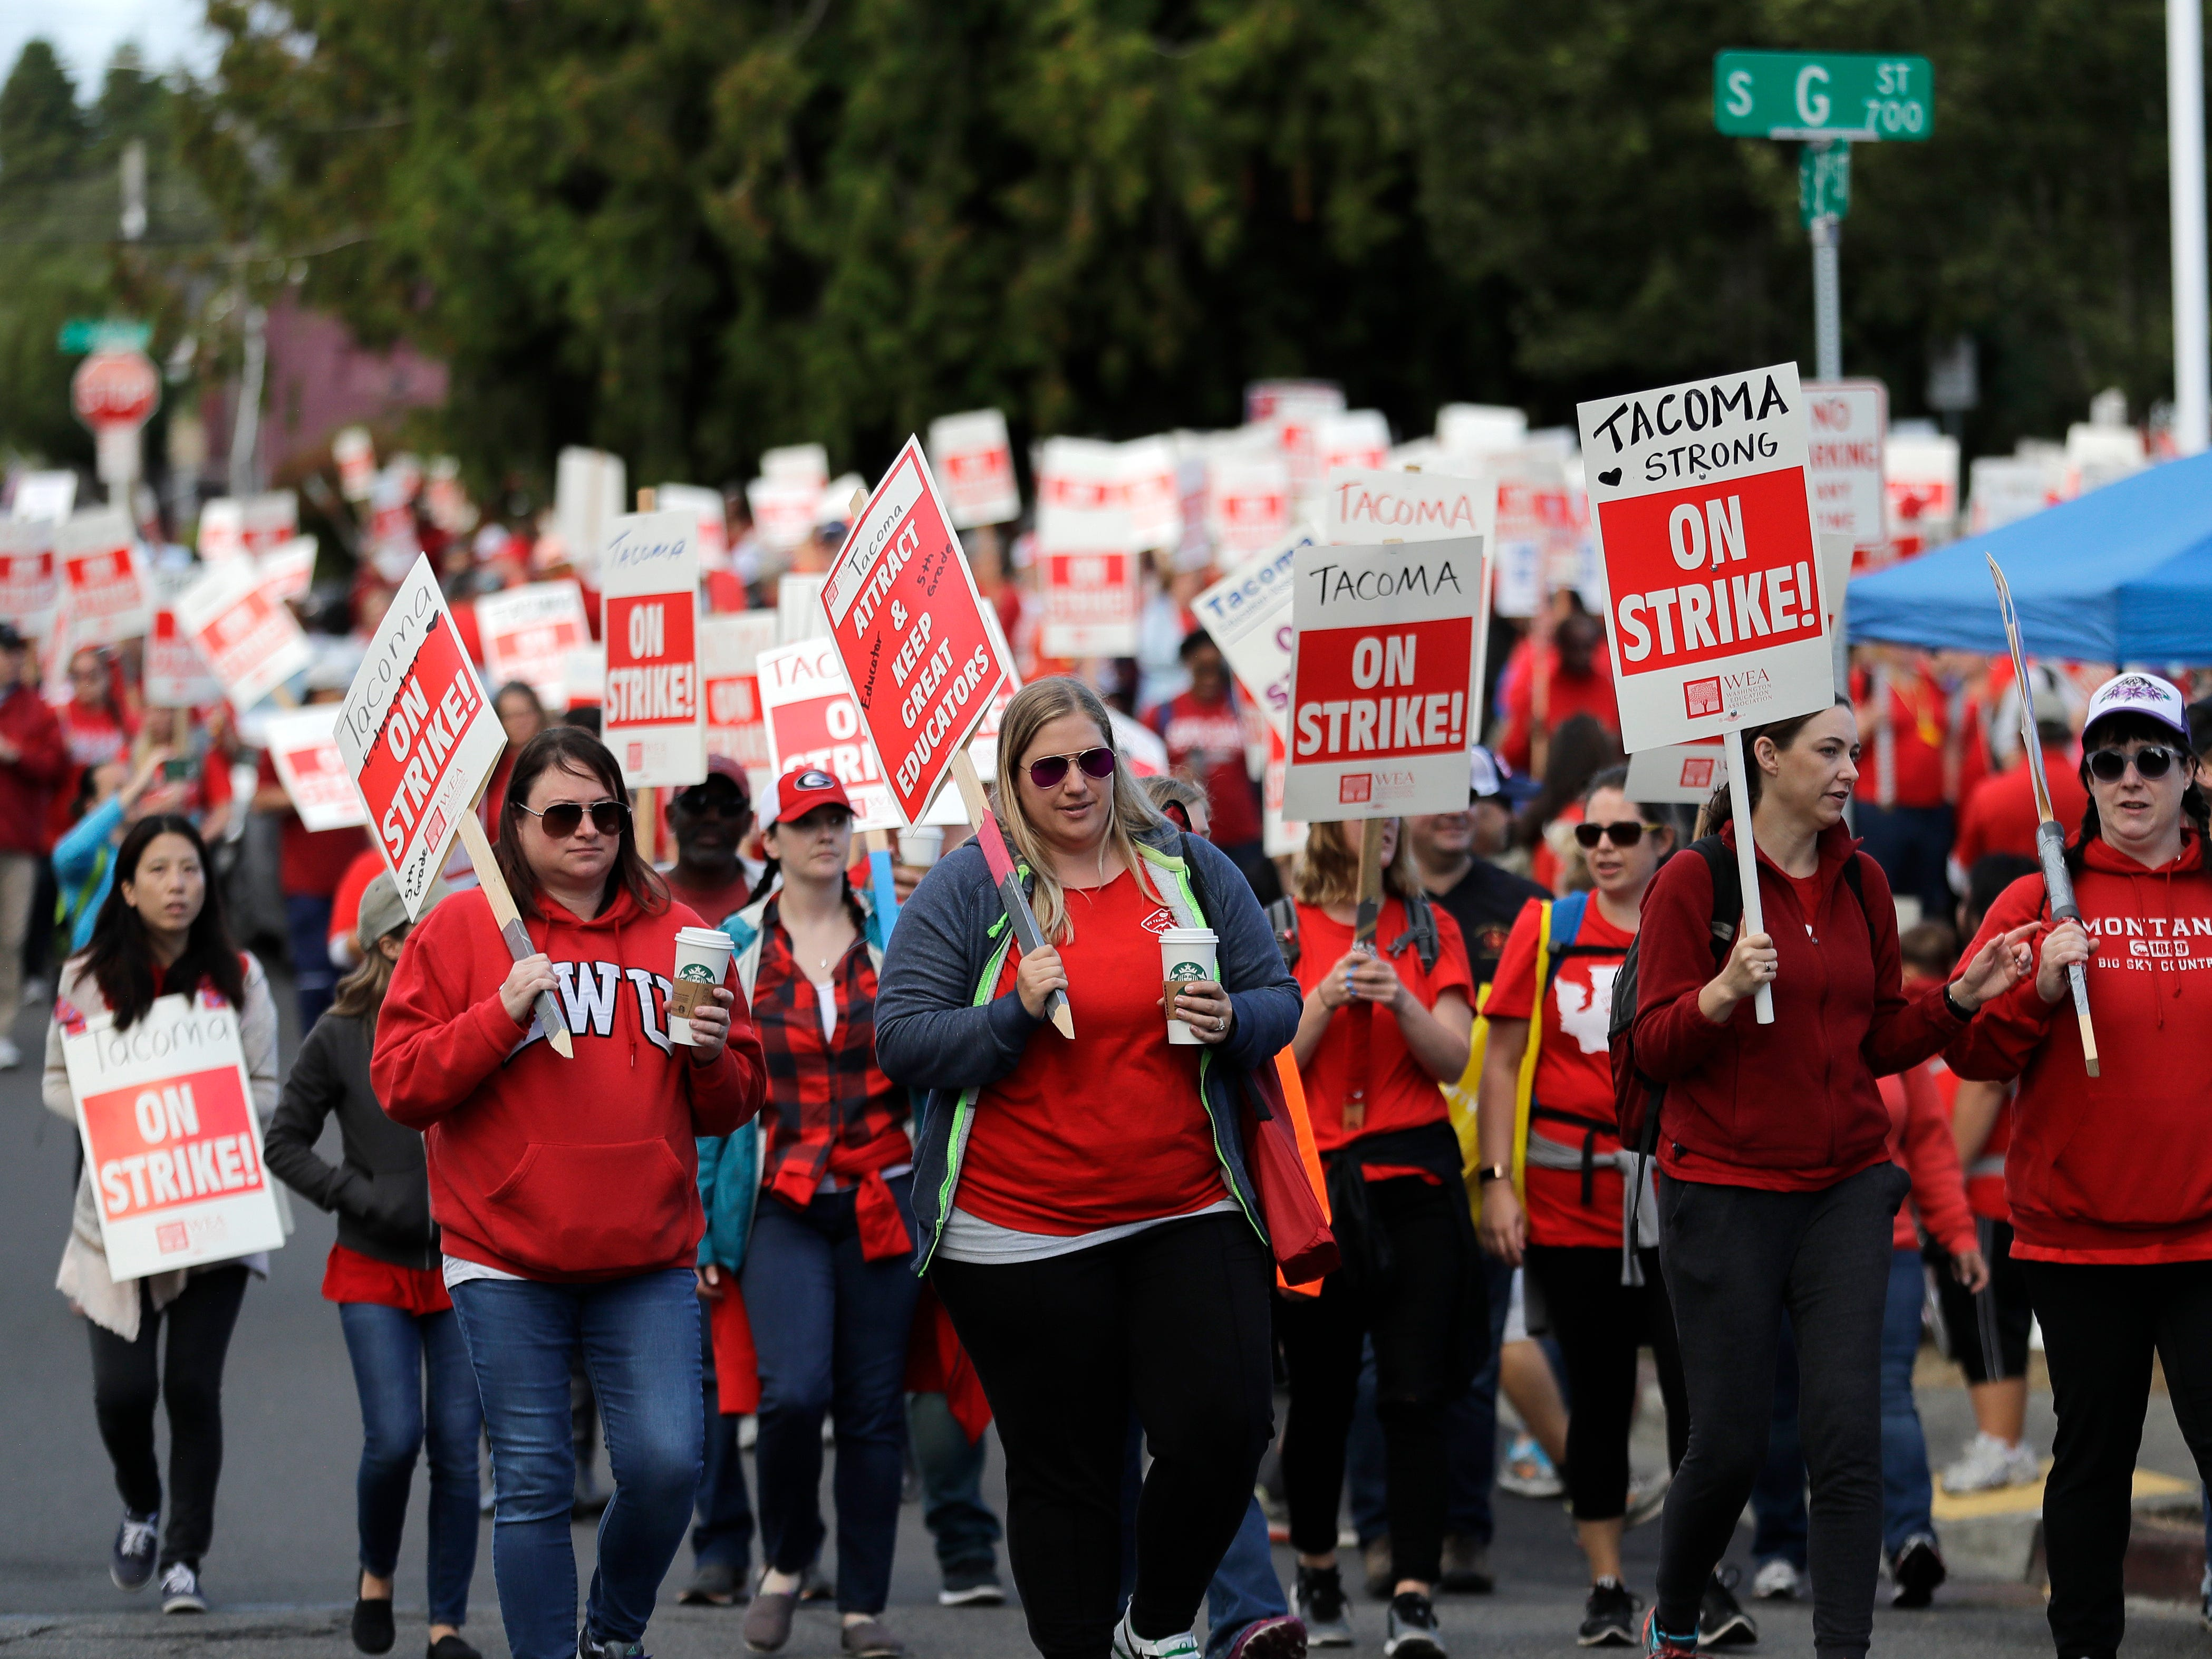 Striking teachers carry picket signs as they march around the Tacoma School District Central Administration Building, Monday, Sept. 10, 2018, in Tacoma, Wash. Teachers in the district have been on strike since last week.